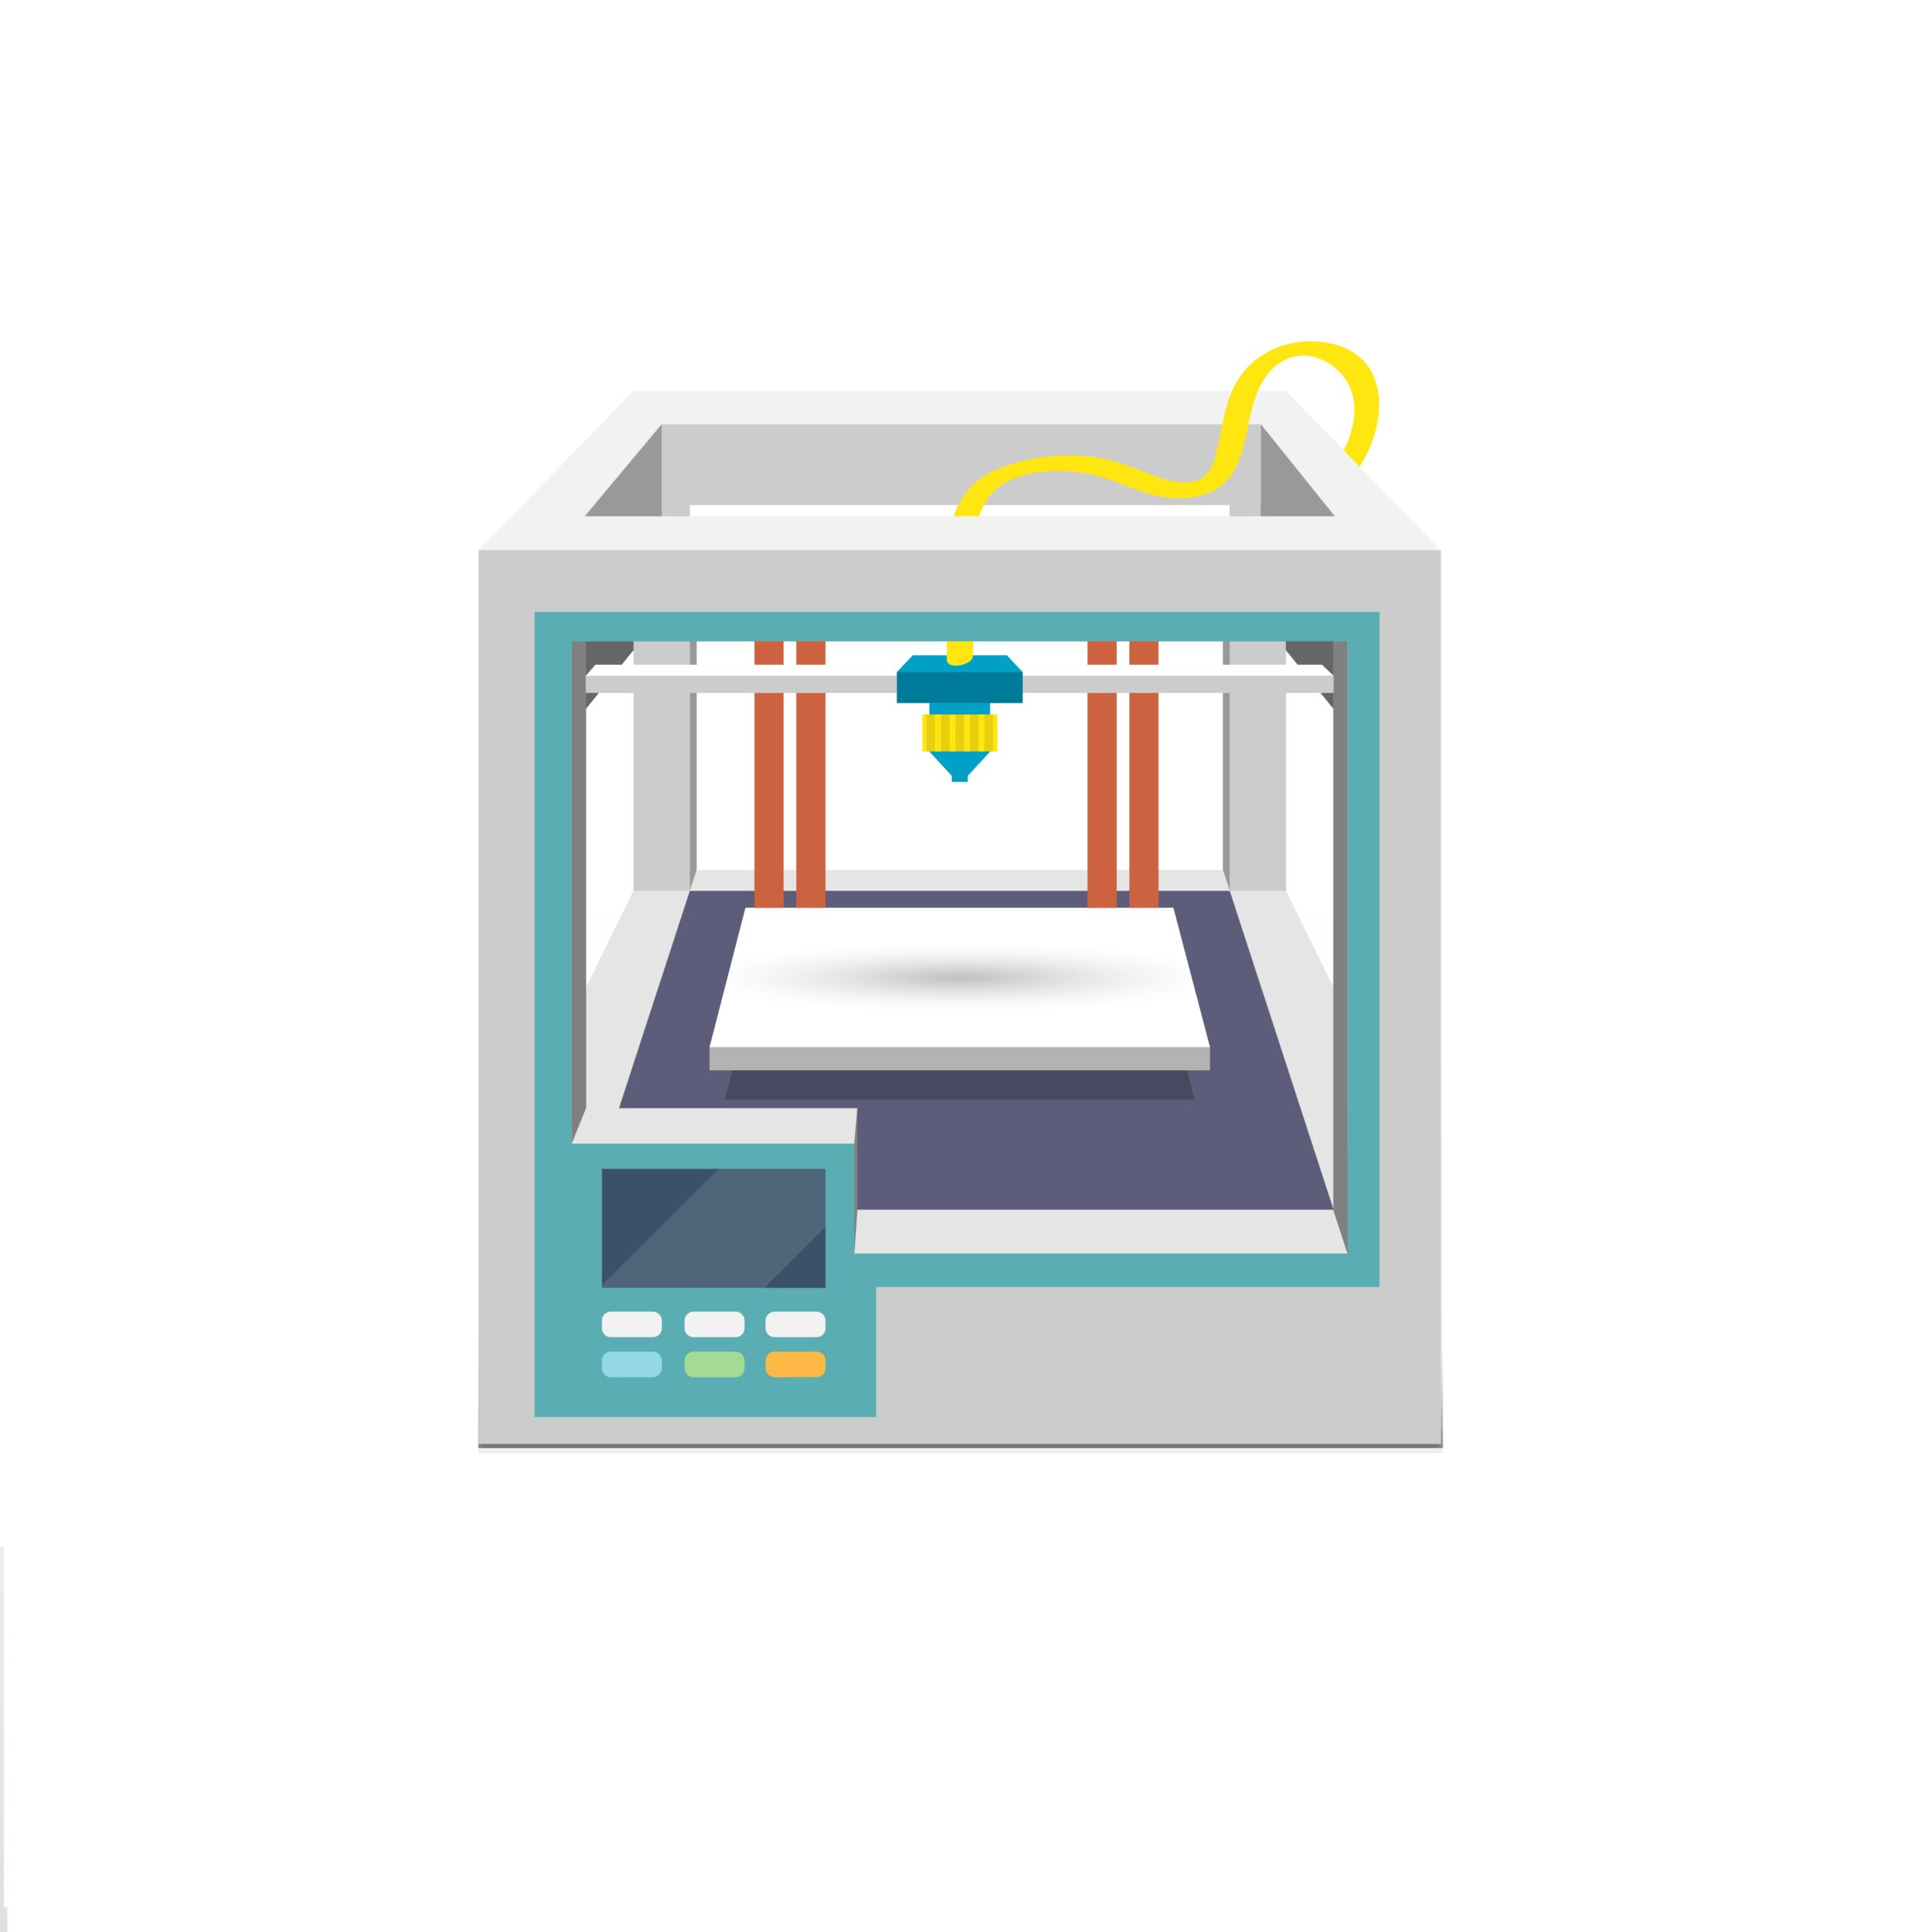 Module 2 – 3D Printing as an Adult Education tool